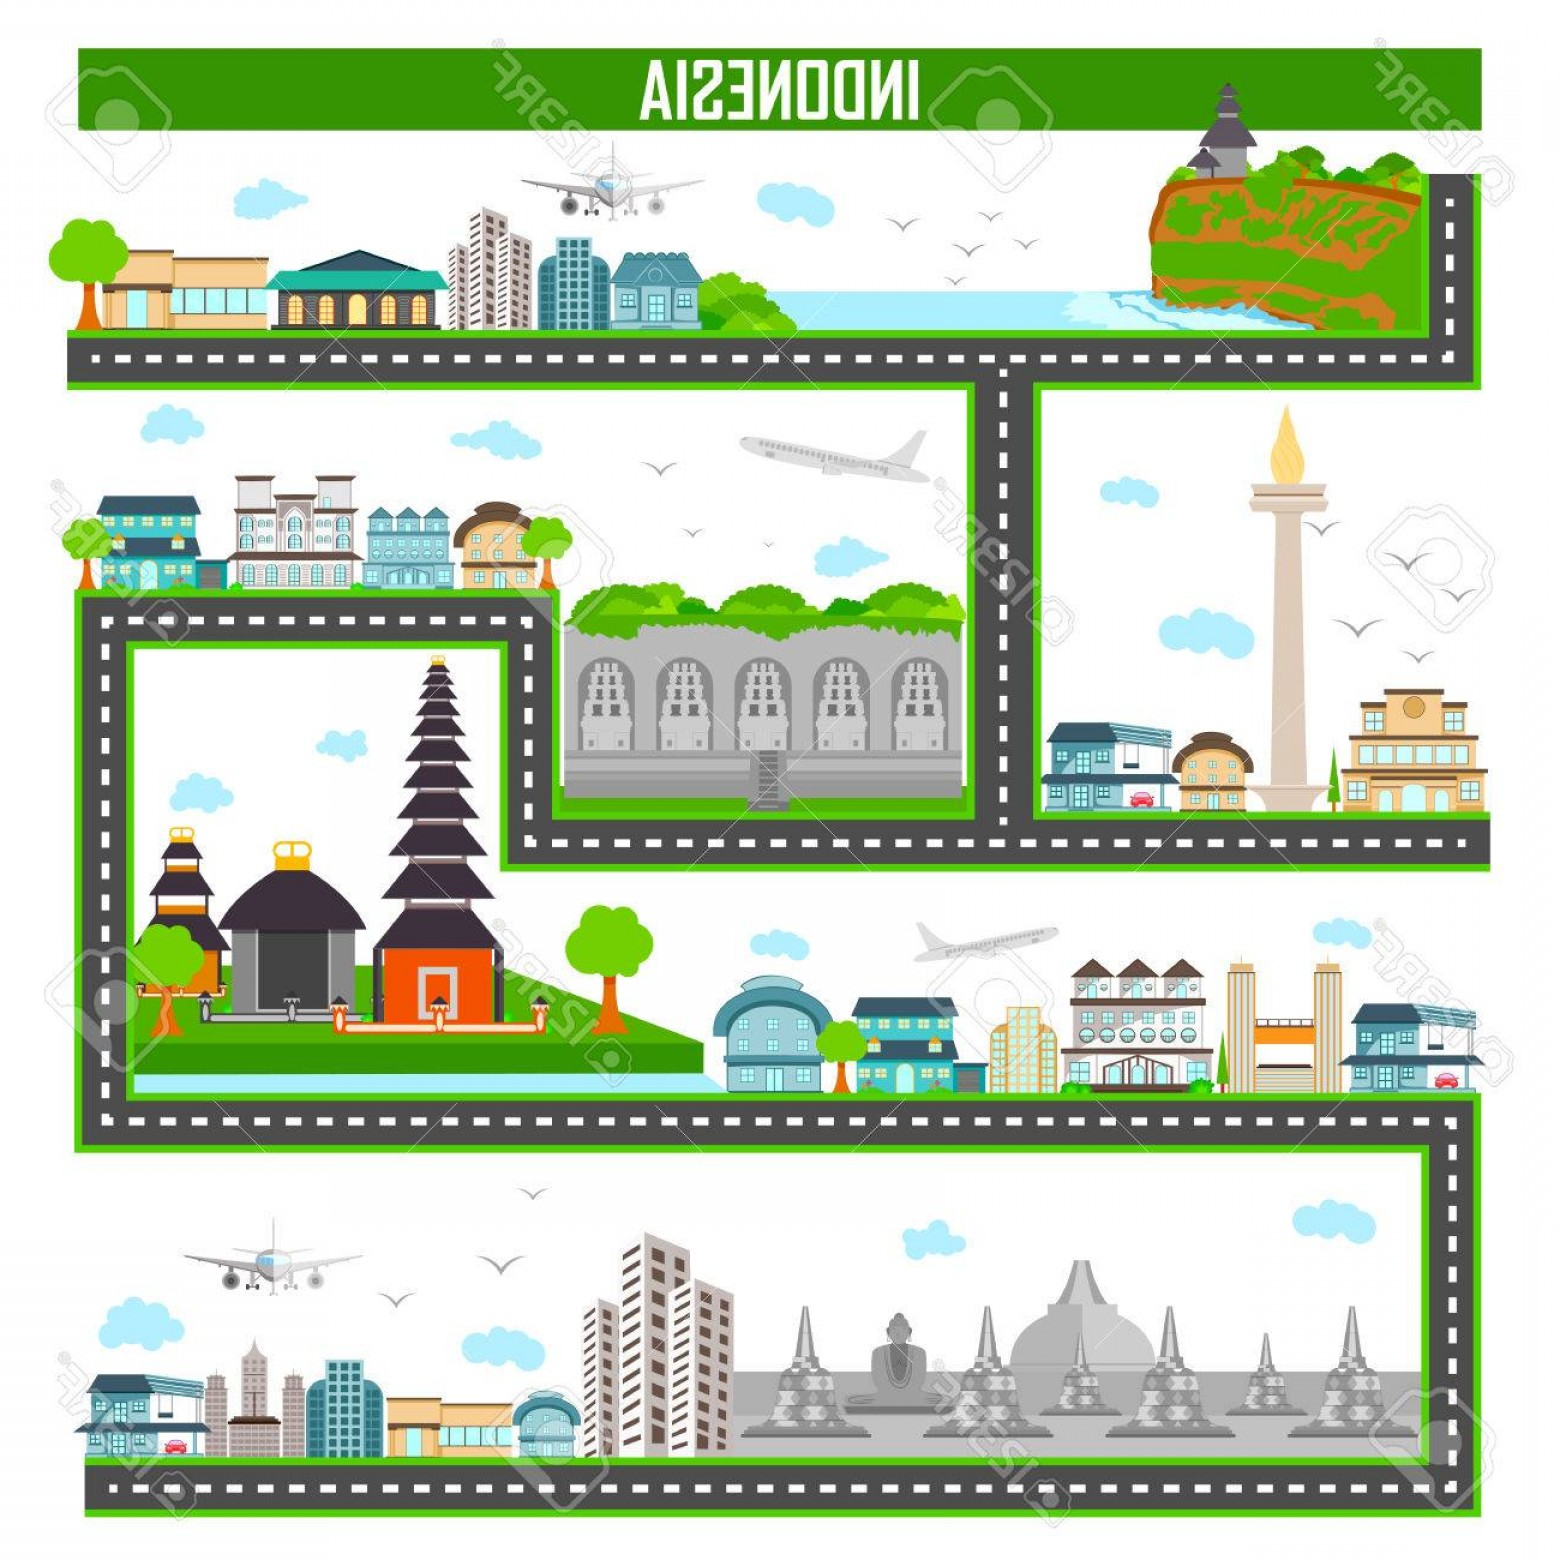 Famous Easy Vectors: Photostock Vector Easy To Edit Vector Illustration Of Cityscape With Famous Monument And Building Of Indonesia